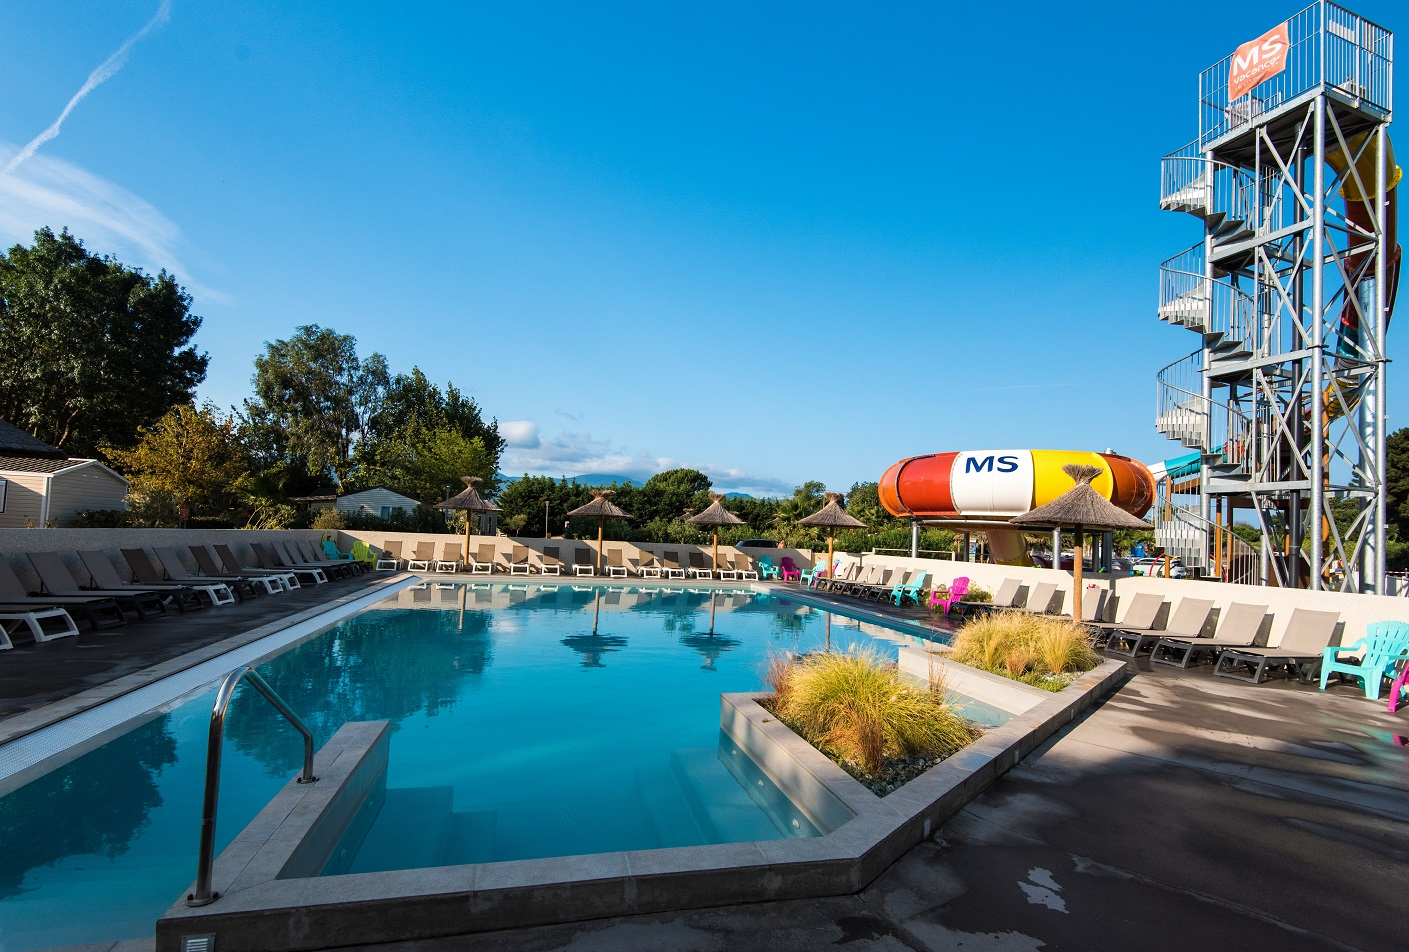 Camping club le littoral 5 5 argeles sur mer for Camping a argeles sur mer avec piscine